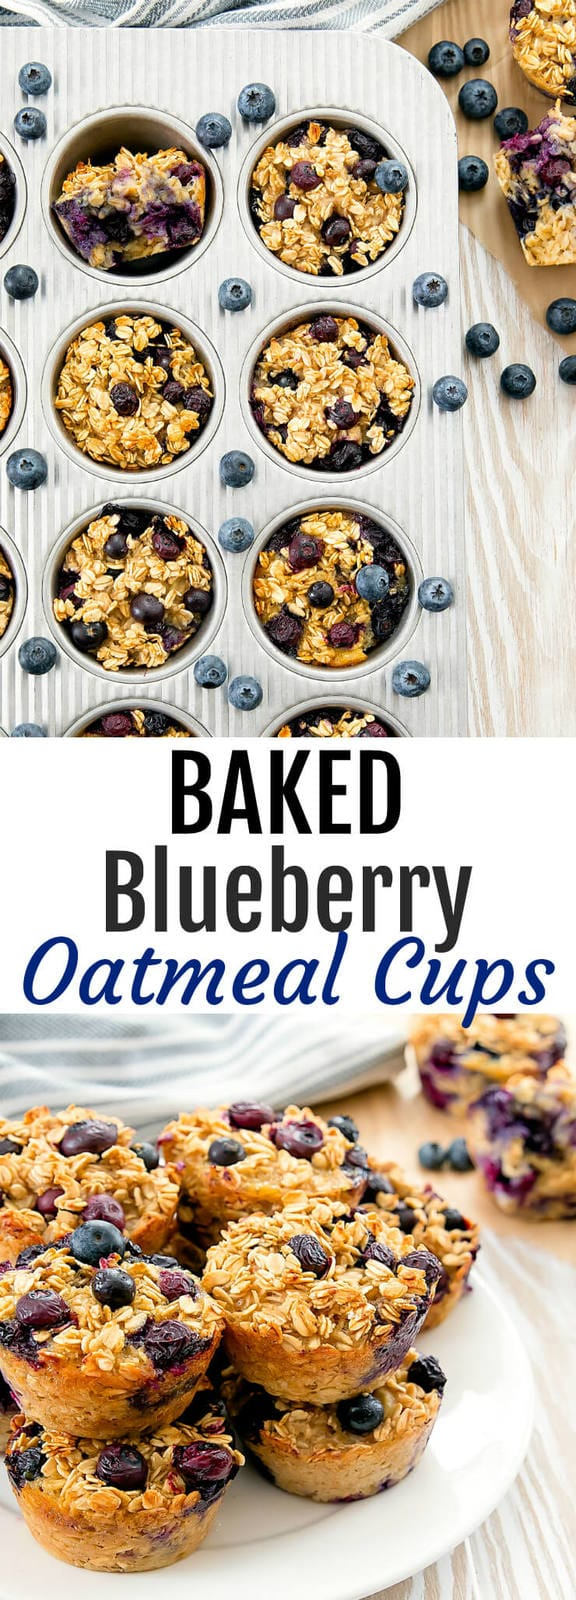 Baked Blueberry Oatmeal Cups. An easy healthy breakfast that can be made ahead of time. Great for meal prep or on-the-go.